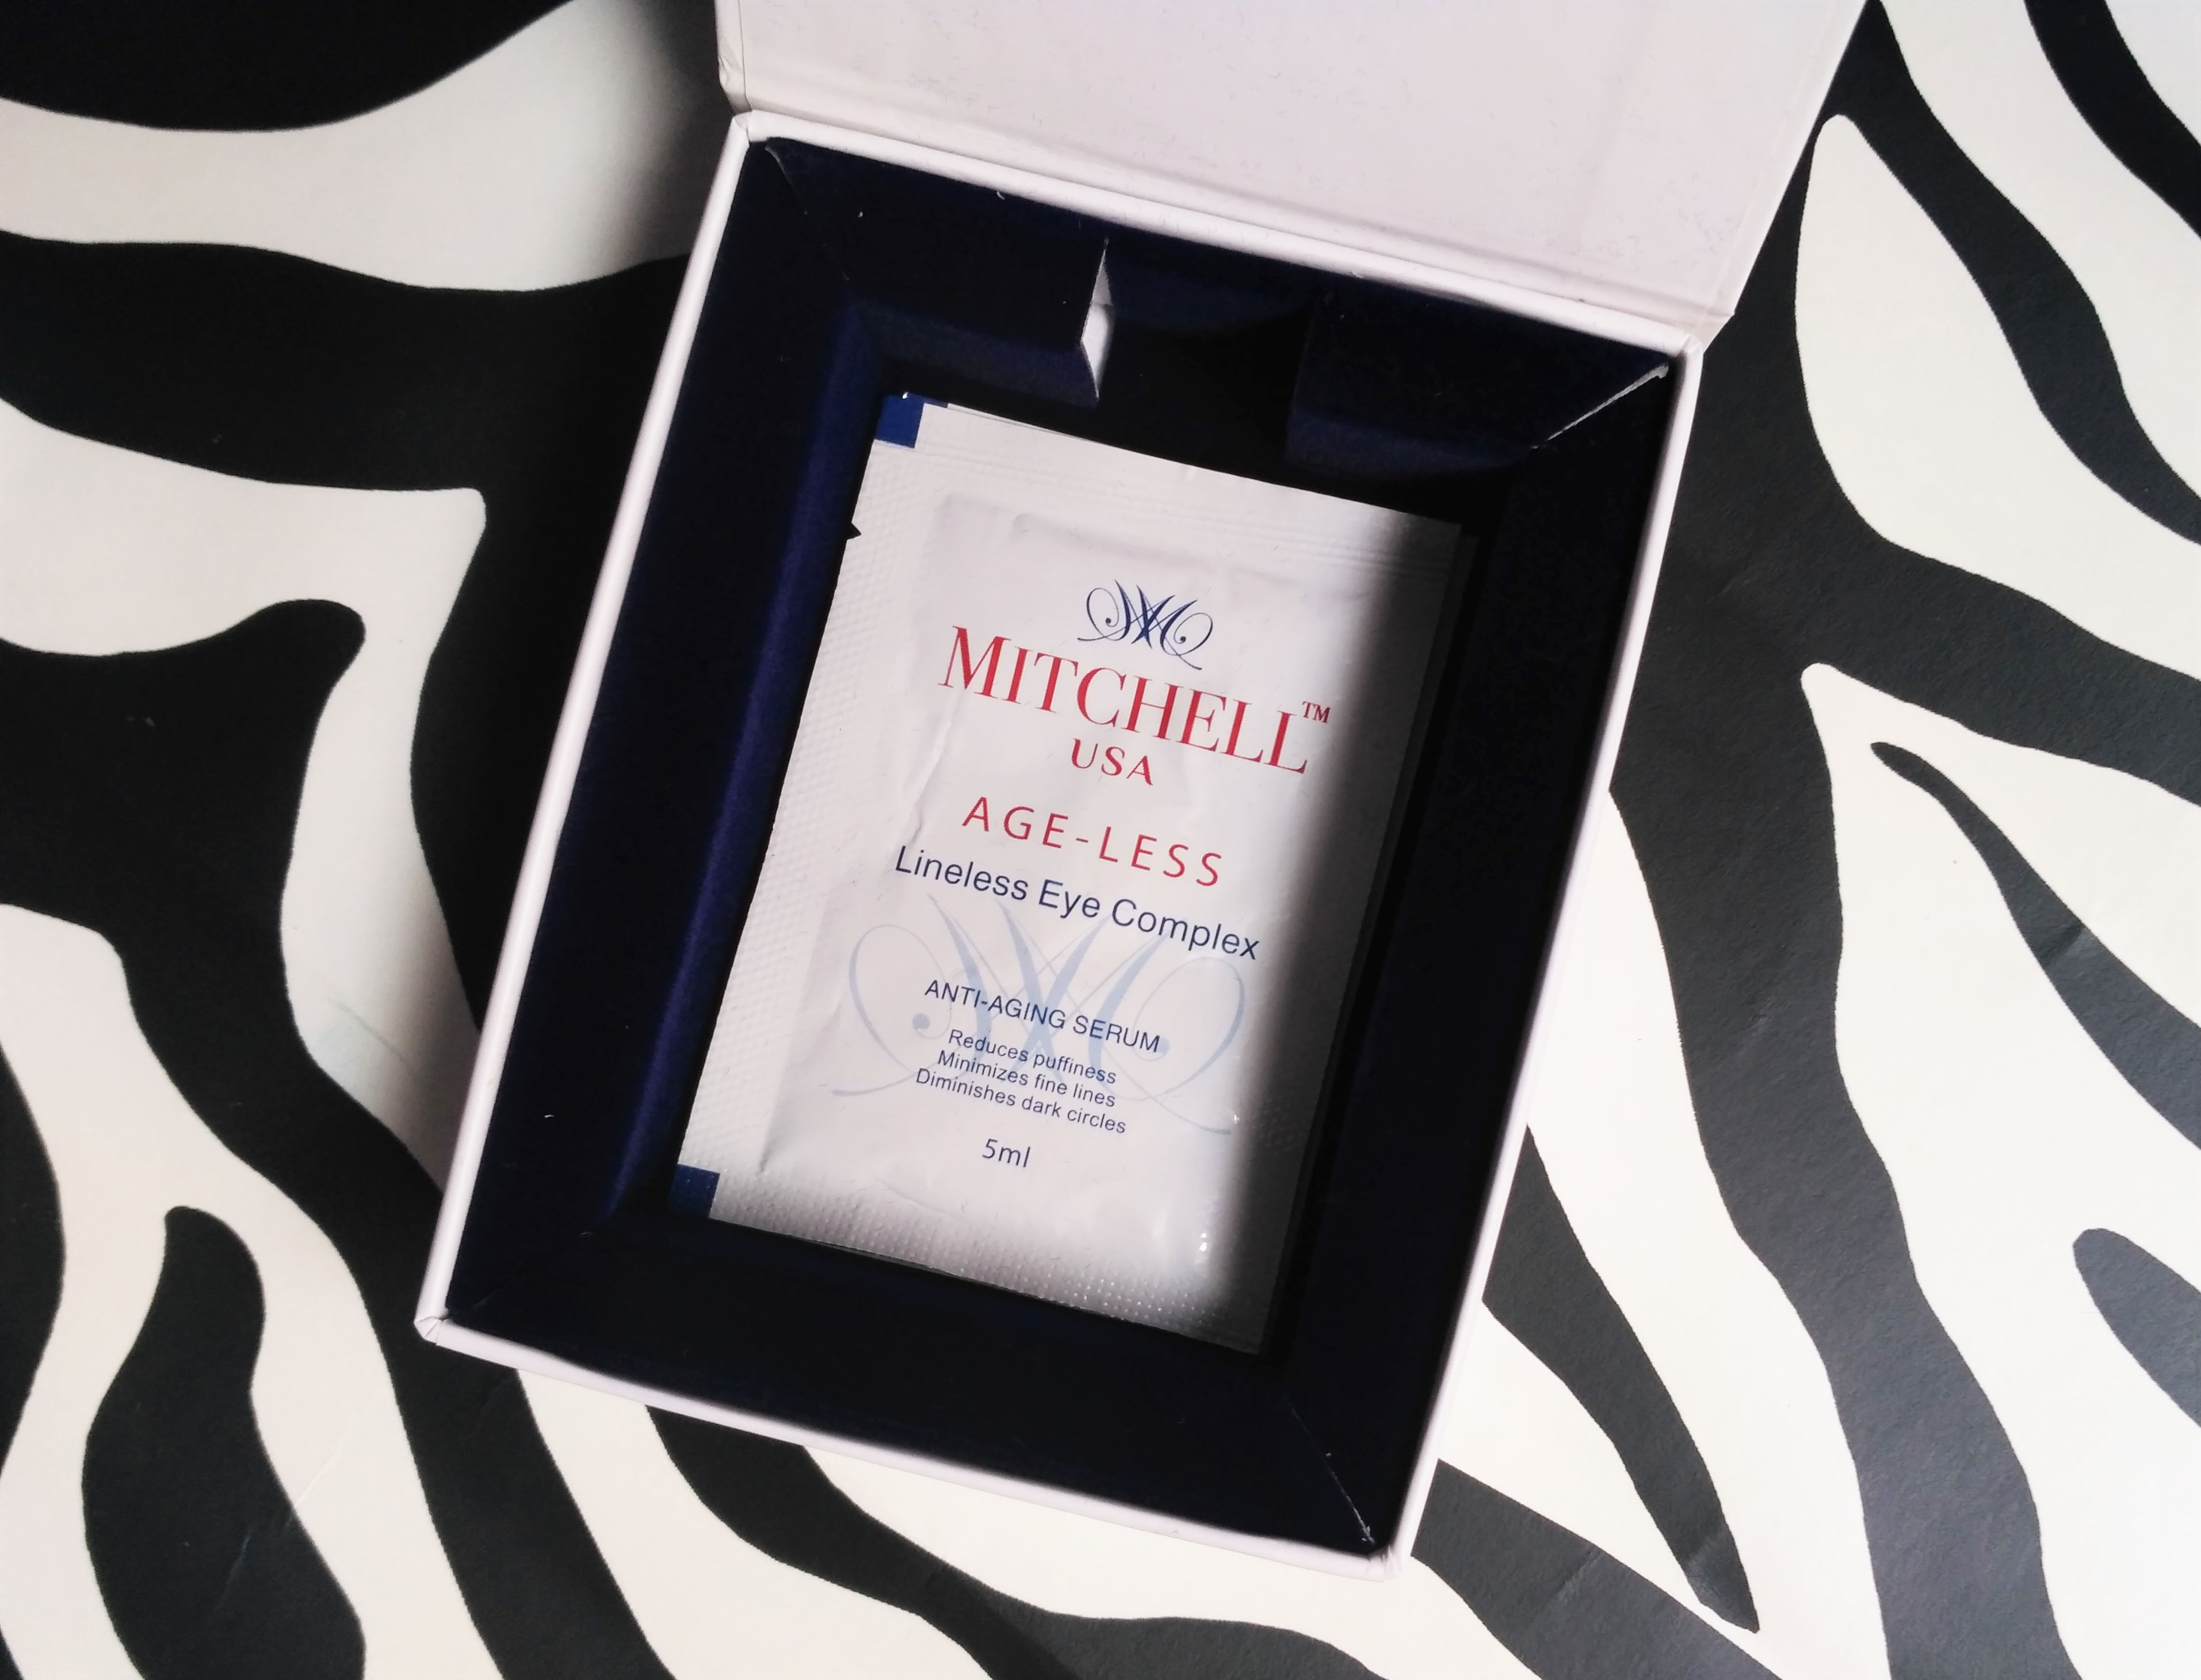 Mitchell USA Age Less Skincare Range Review